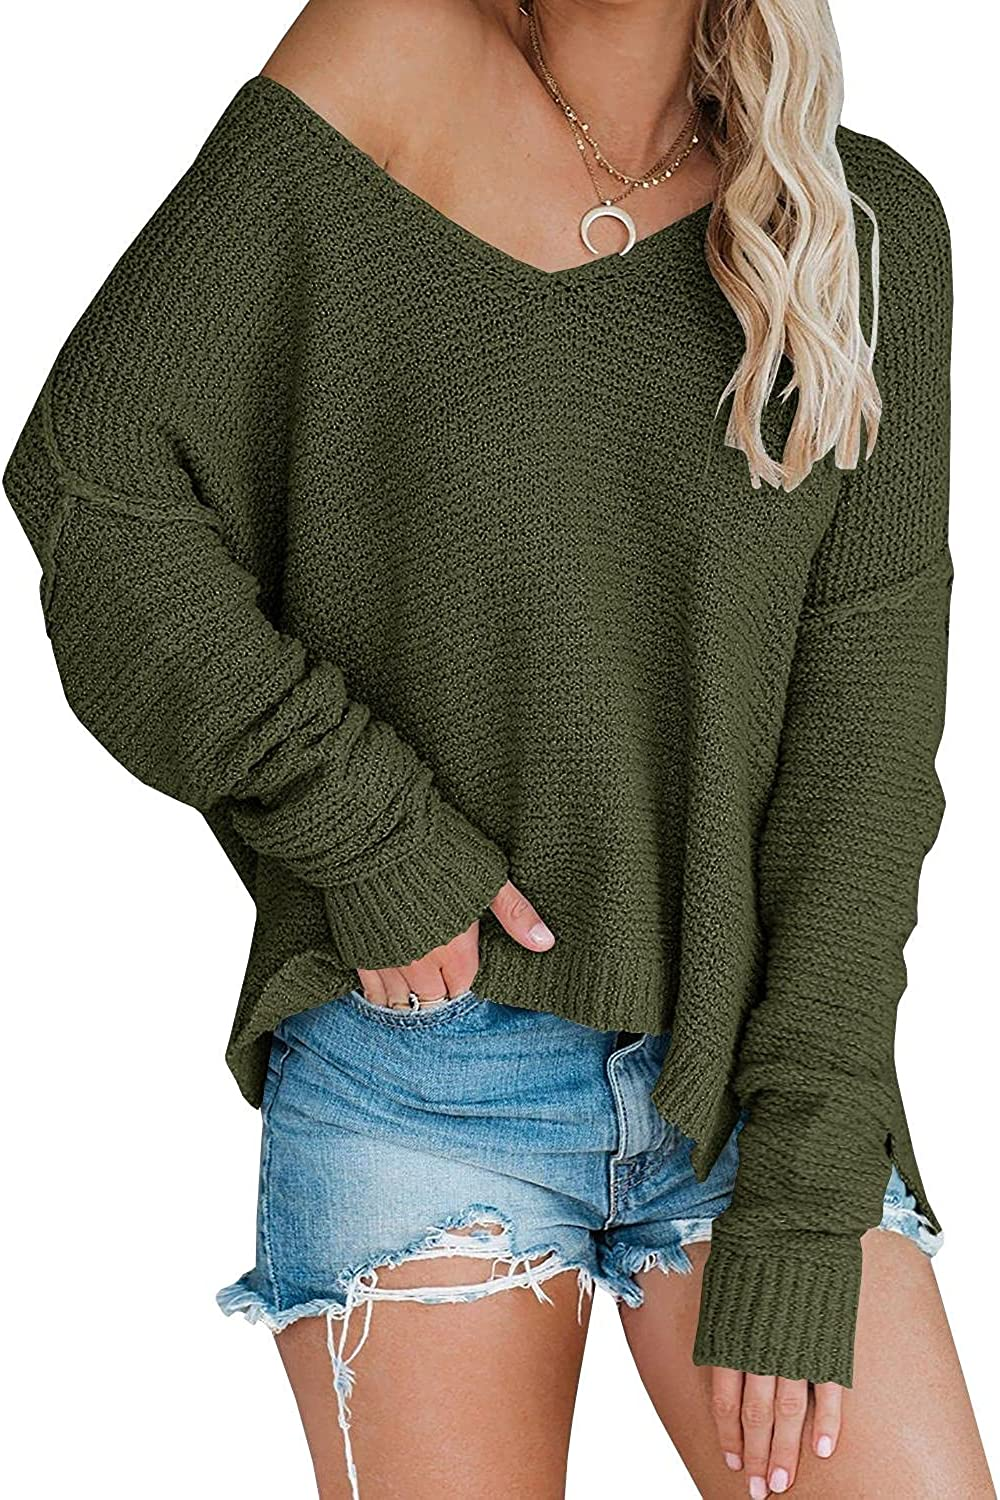 Women's Off Shoulder Knit Sweaters Oversized V Neck Long Sleeve Loose Lightweight Pullover Tops